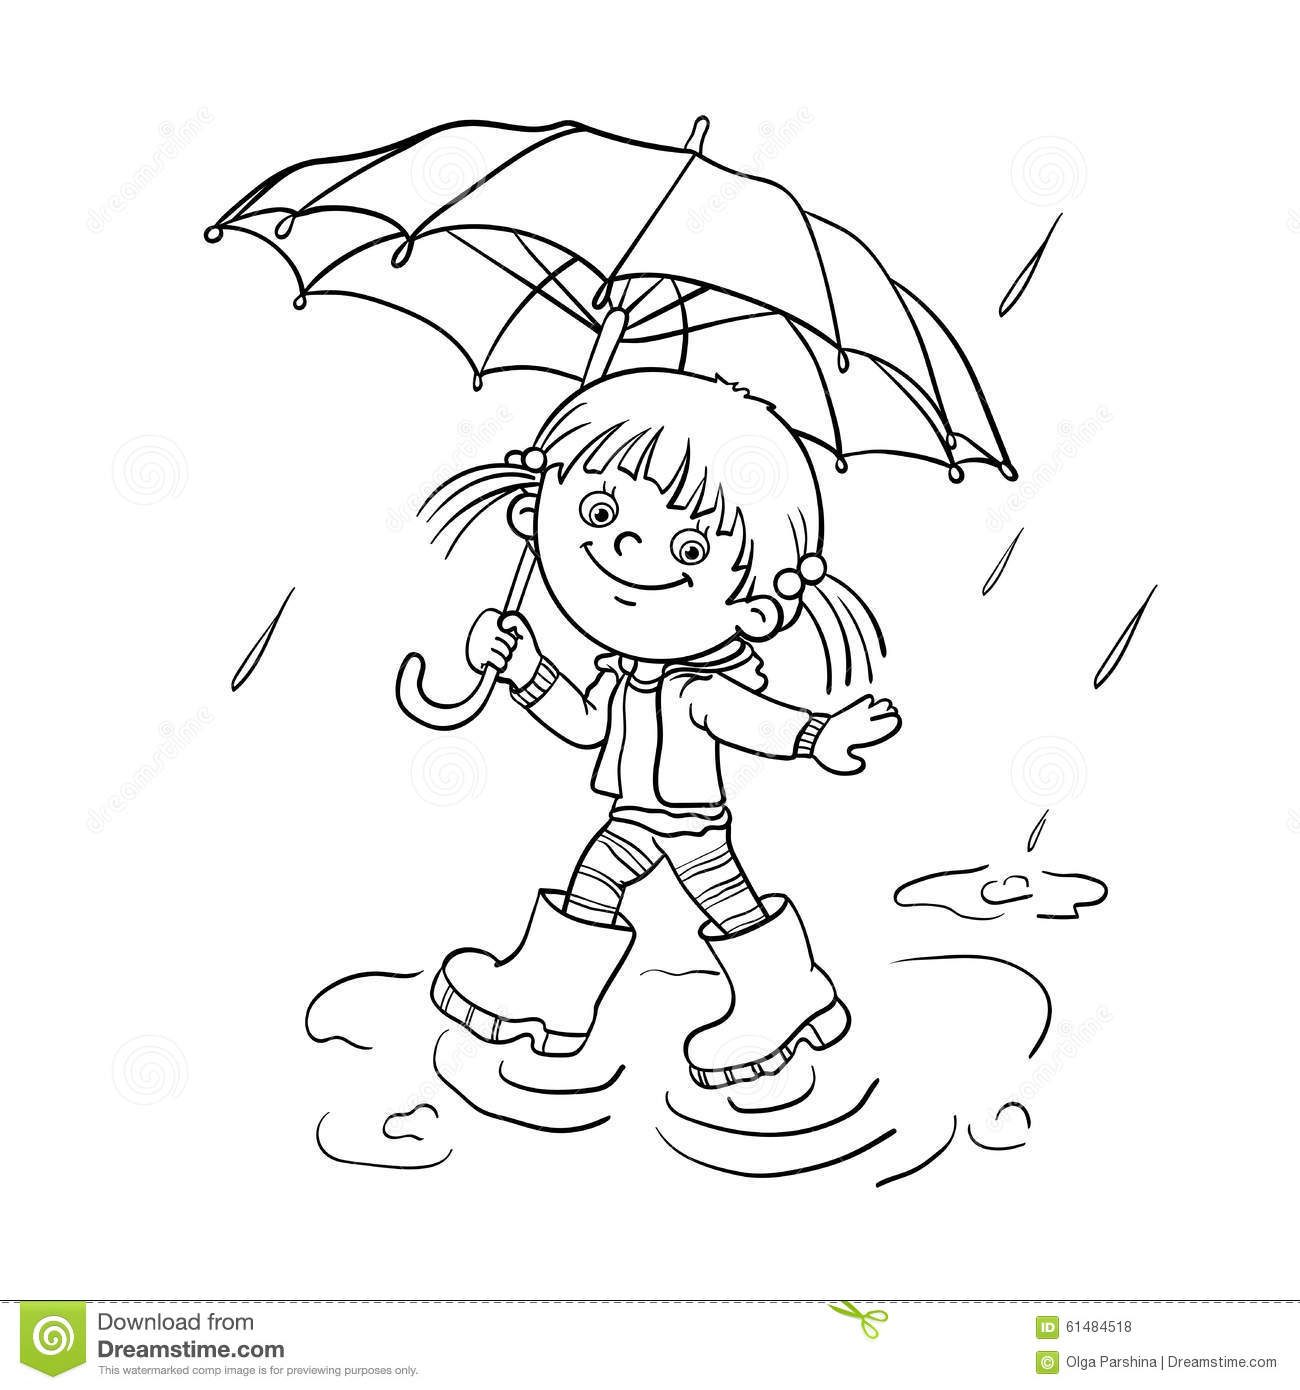 Coloring page umbrella raindrops - Coloring Page Outline Of A Cartoon Joyful Girl Walking In The Rain Download Image Coloring Page Umbrella Raindrops